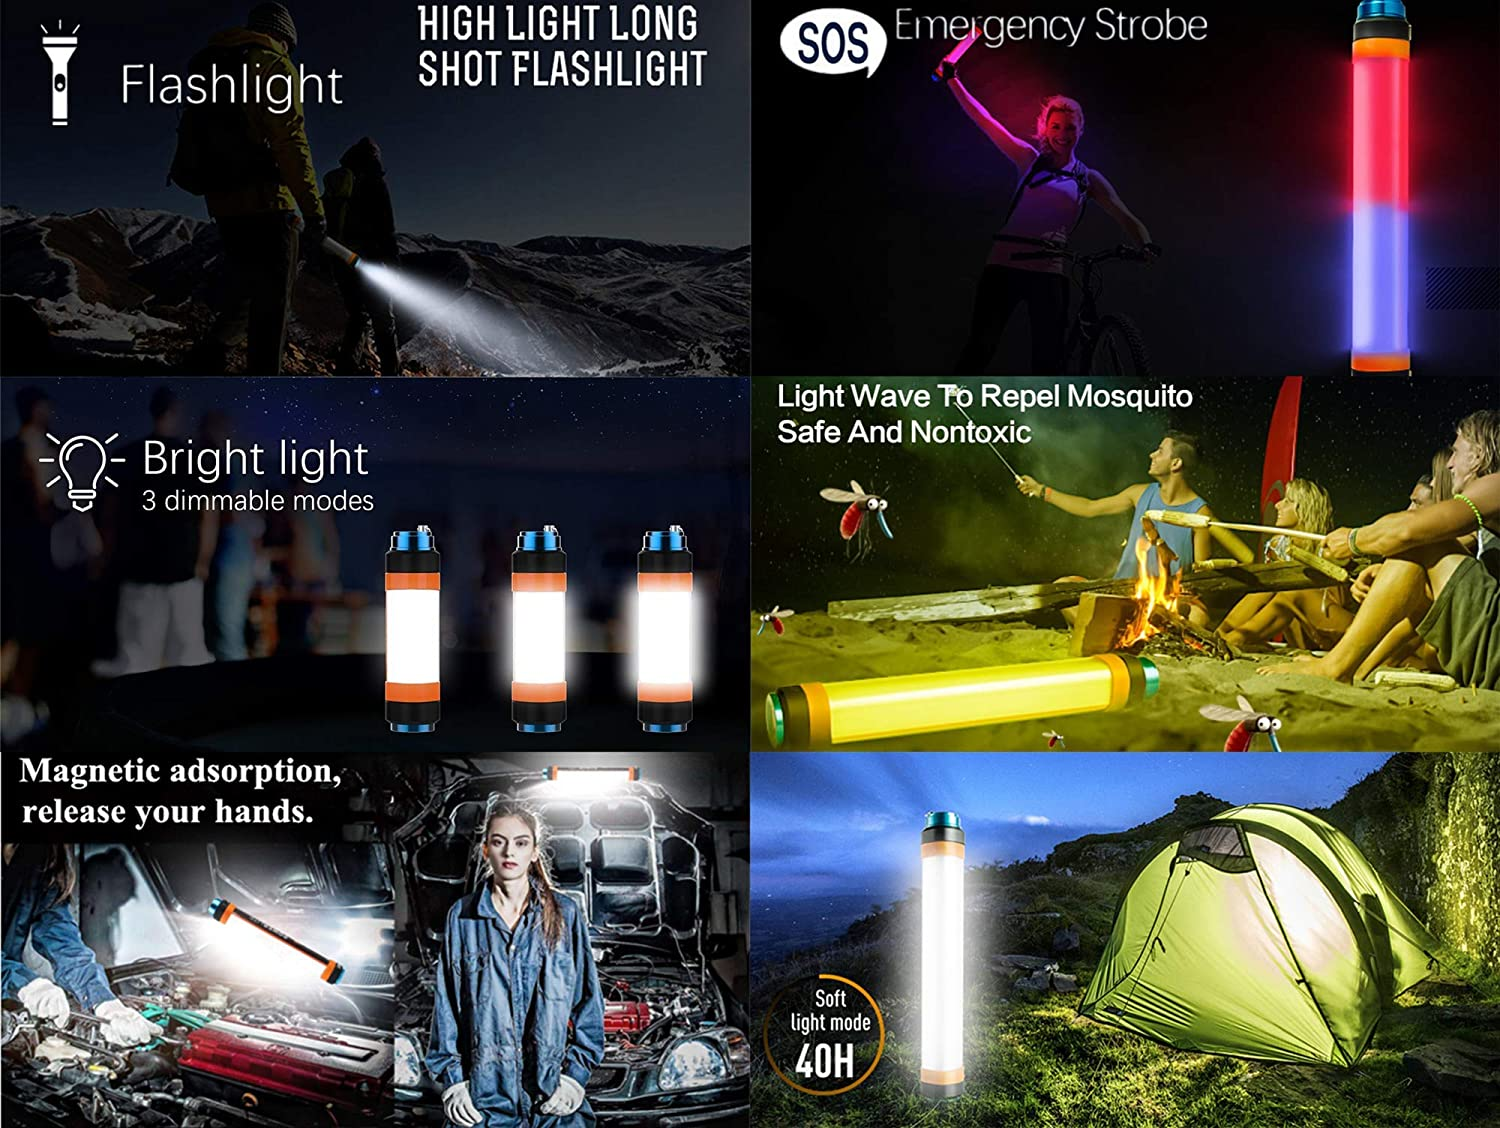 Multi-function Led Flashlight Camping Lights With USB 7800mAh Power Banks IP68 Waterproof Magnetic Bases USB Rechargeable Torch SOS Flashing light Mosquito Repellent Lamp Led Lantern